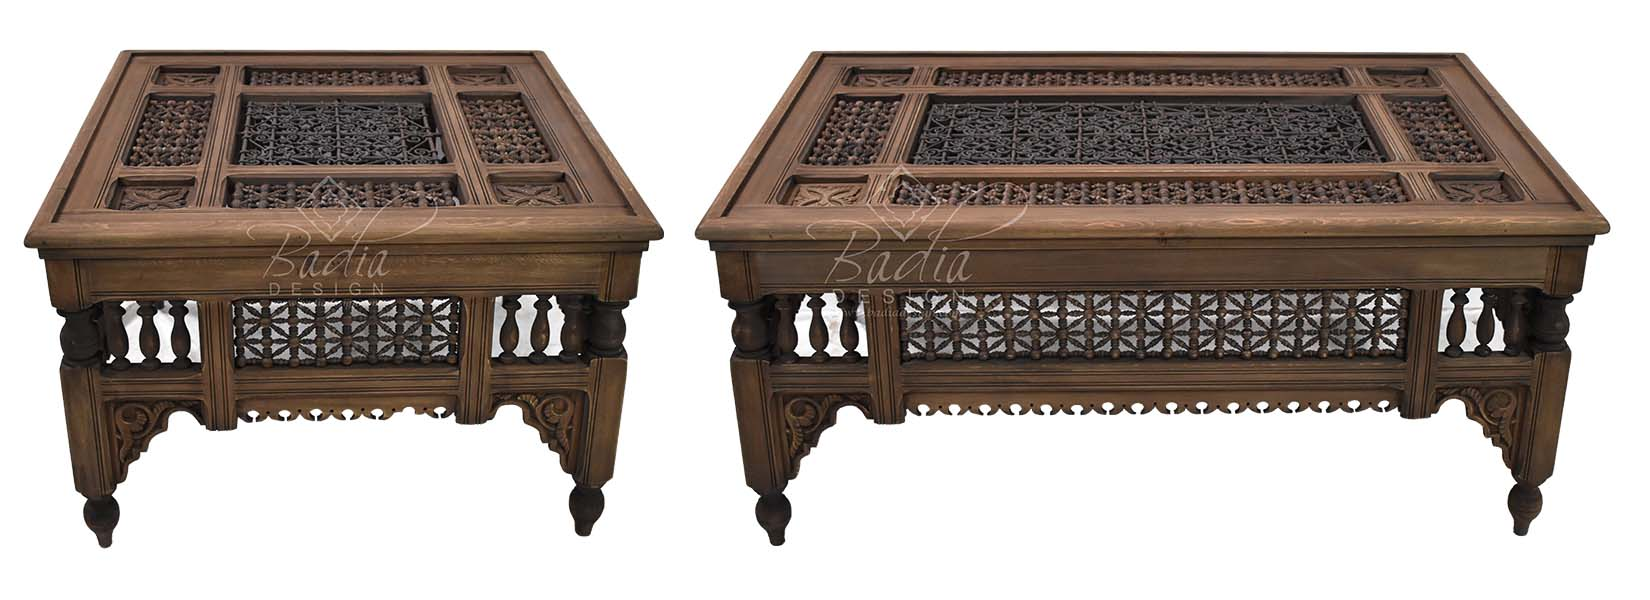 moroccan-wooden-moucharabieh-coffee-table-cw-st058.jpg